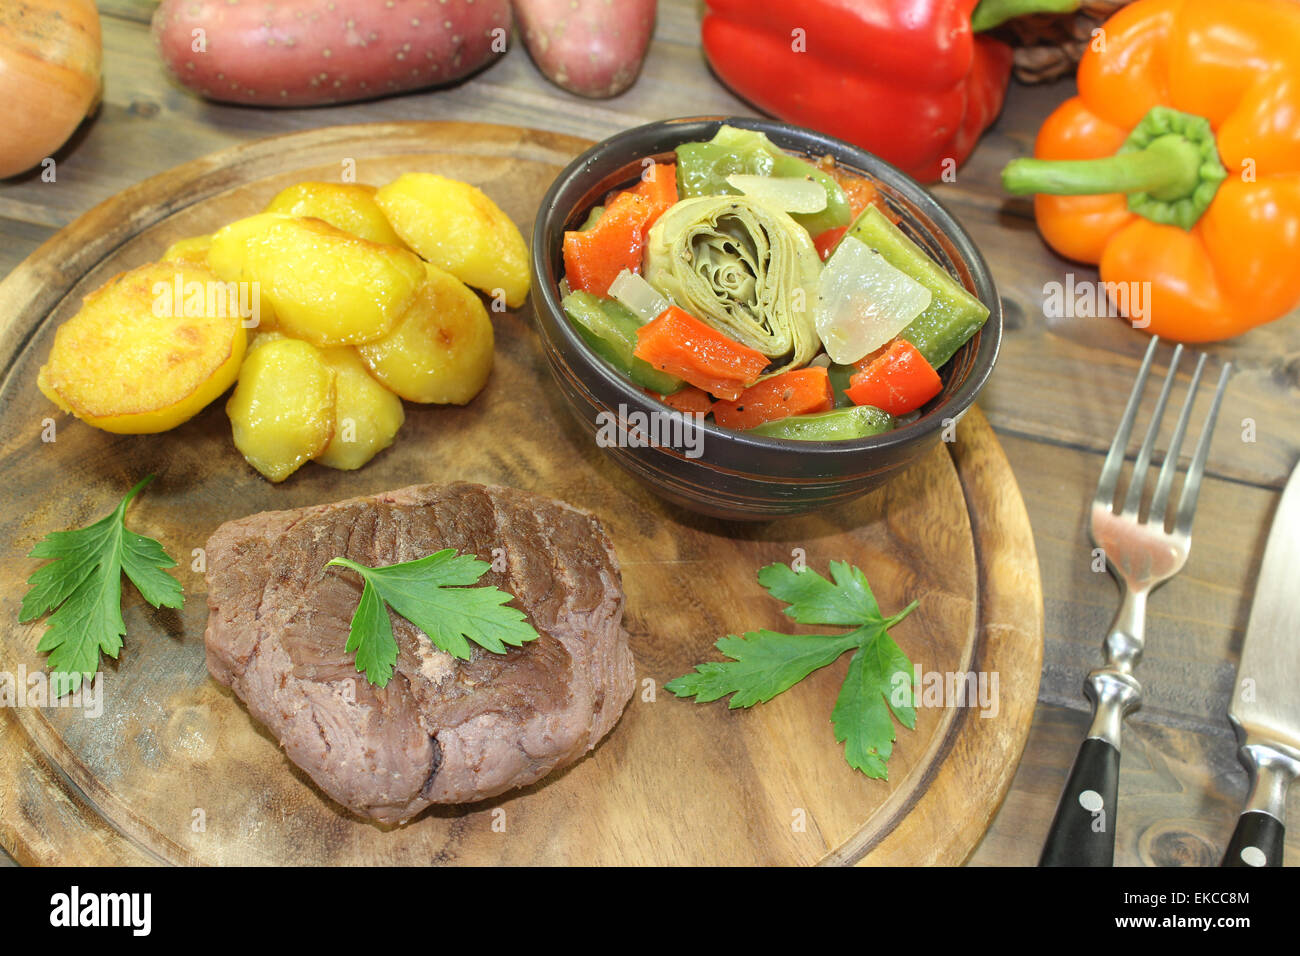 Ostrich steaks with baked potatoes and vegetables on a wooden board Stock Photo